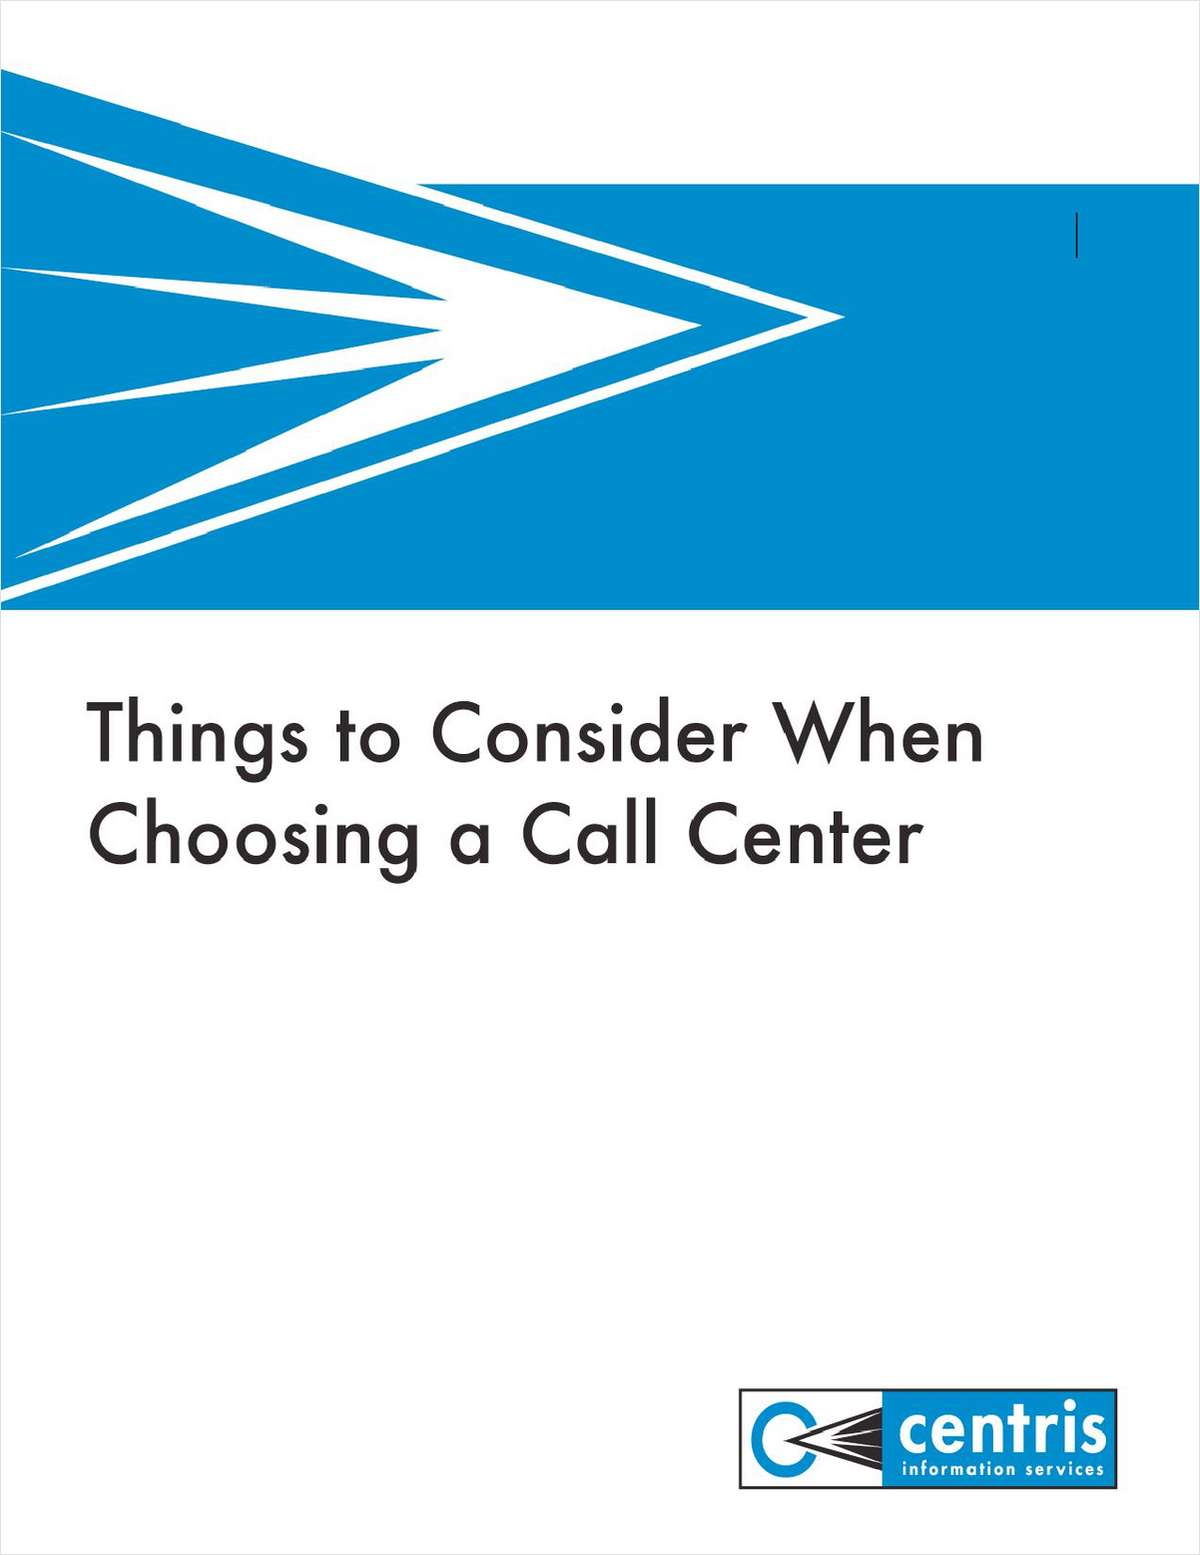 Things to Consider When Choosing a Call Center